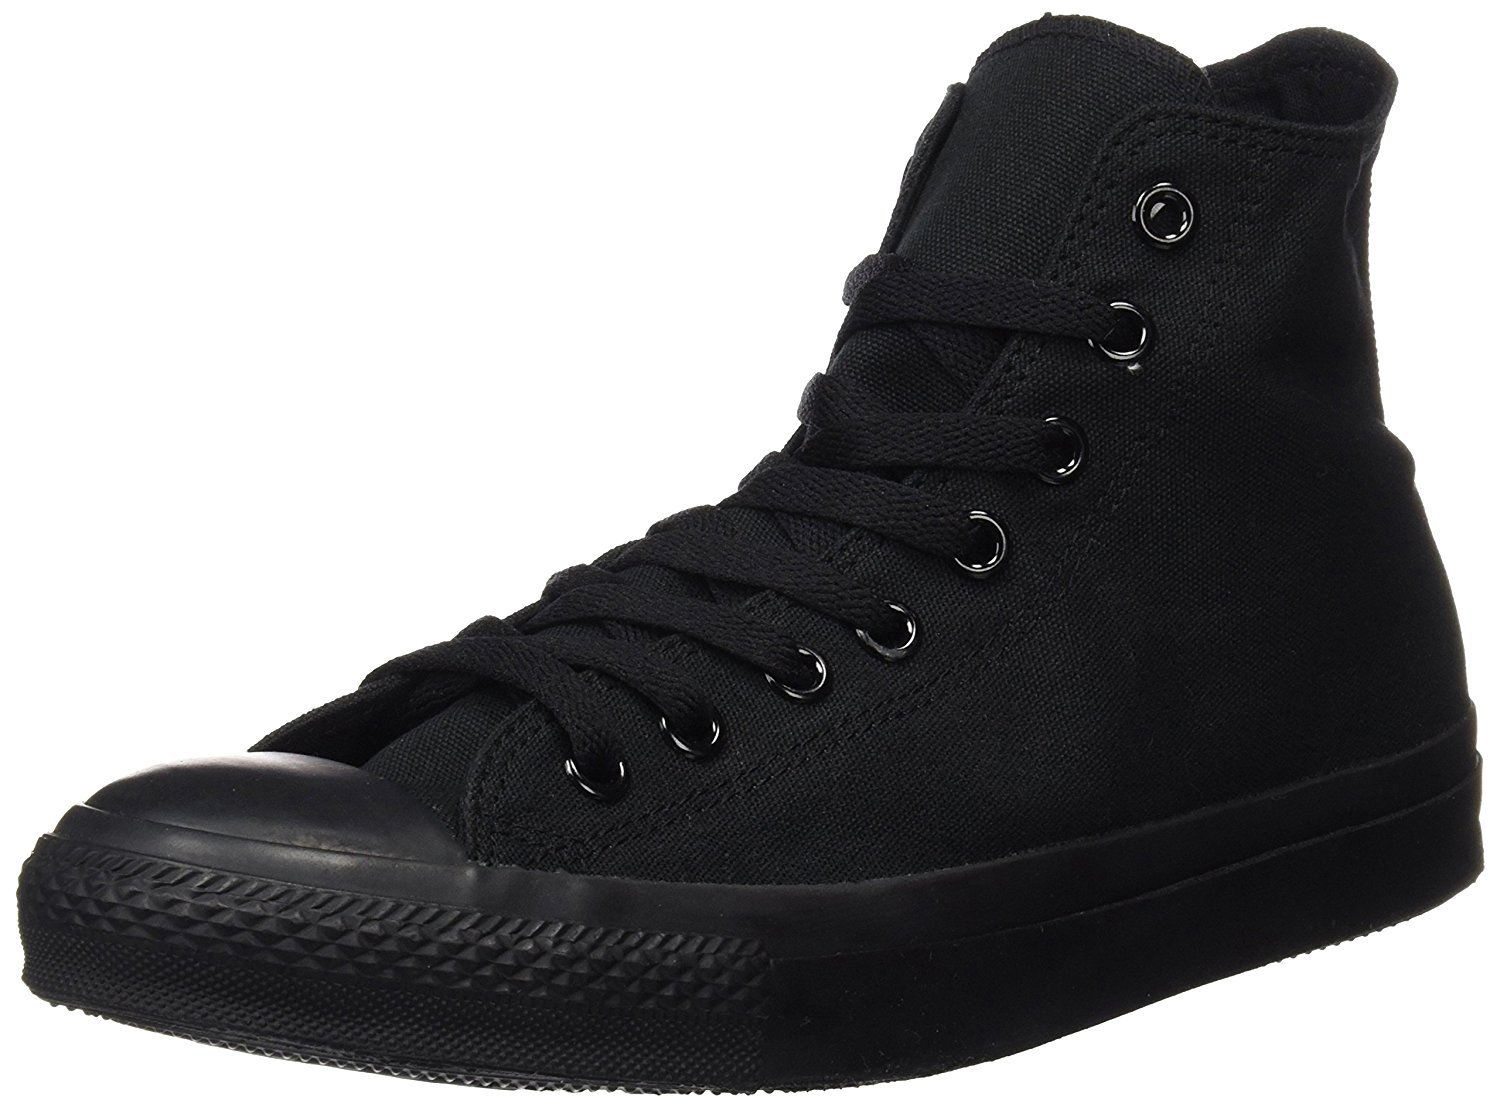 Converse Unisex Chuck Taylor All-Star High-Top Casual Sneakers in Classic Style and Color and Durable Canvas Uppers B075VJHS3G 42-43 M EU / 11 B(M) US Women / 9 D(M) US Men|Black/Black